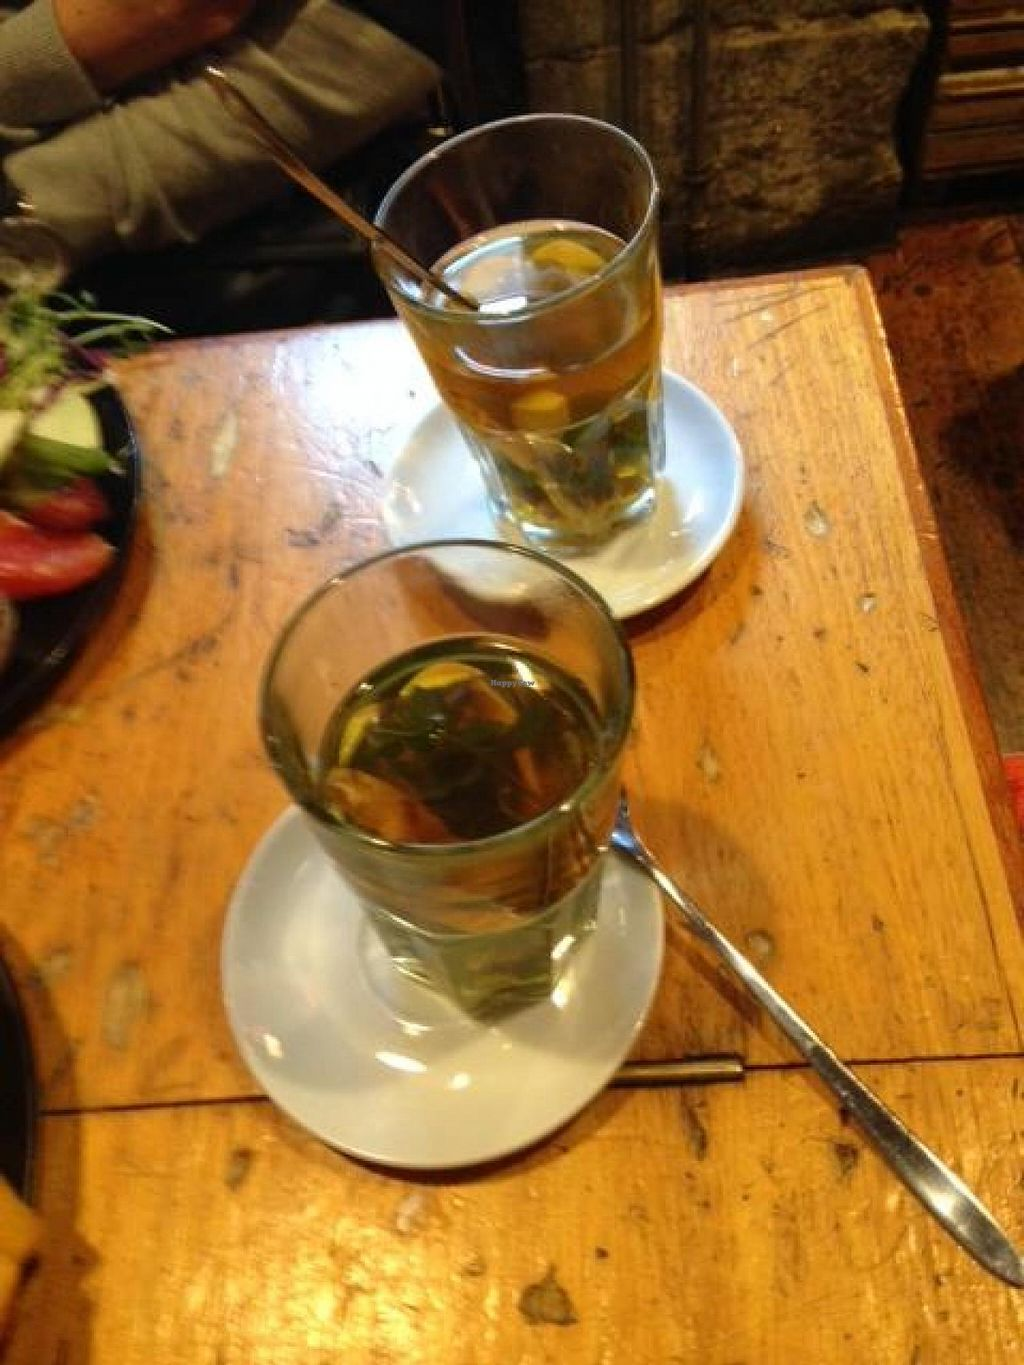 """Photo of Harbo Bar  by <a href=""""/members/profile/Ladan"""">Ladan</a> <br/>Ginger-mint tea <br/> September 13, 2014  - <a href='/contact/abuse/image/46562/79789'>Report</a>"""